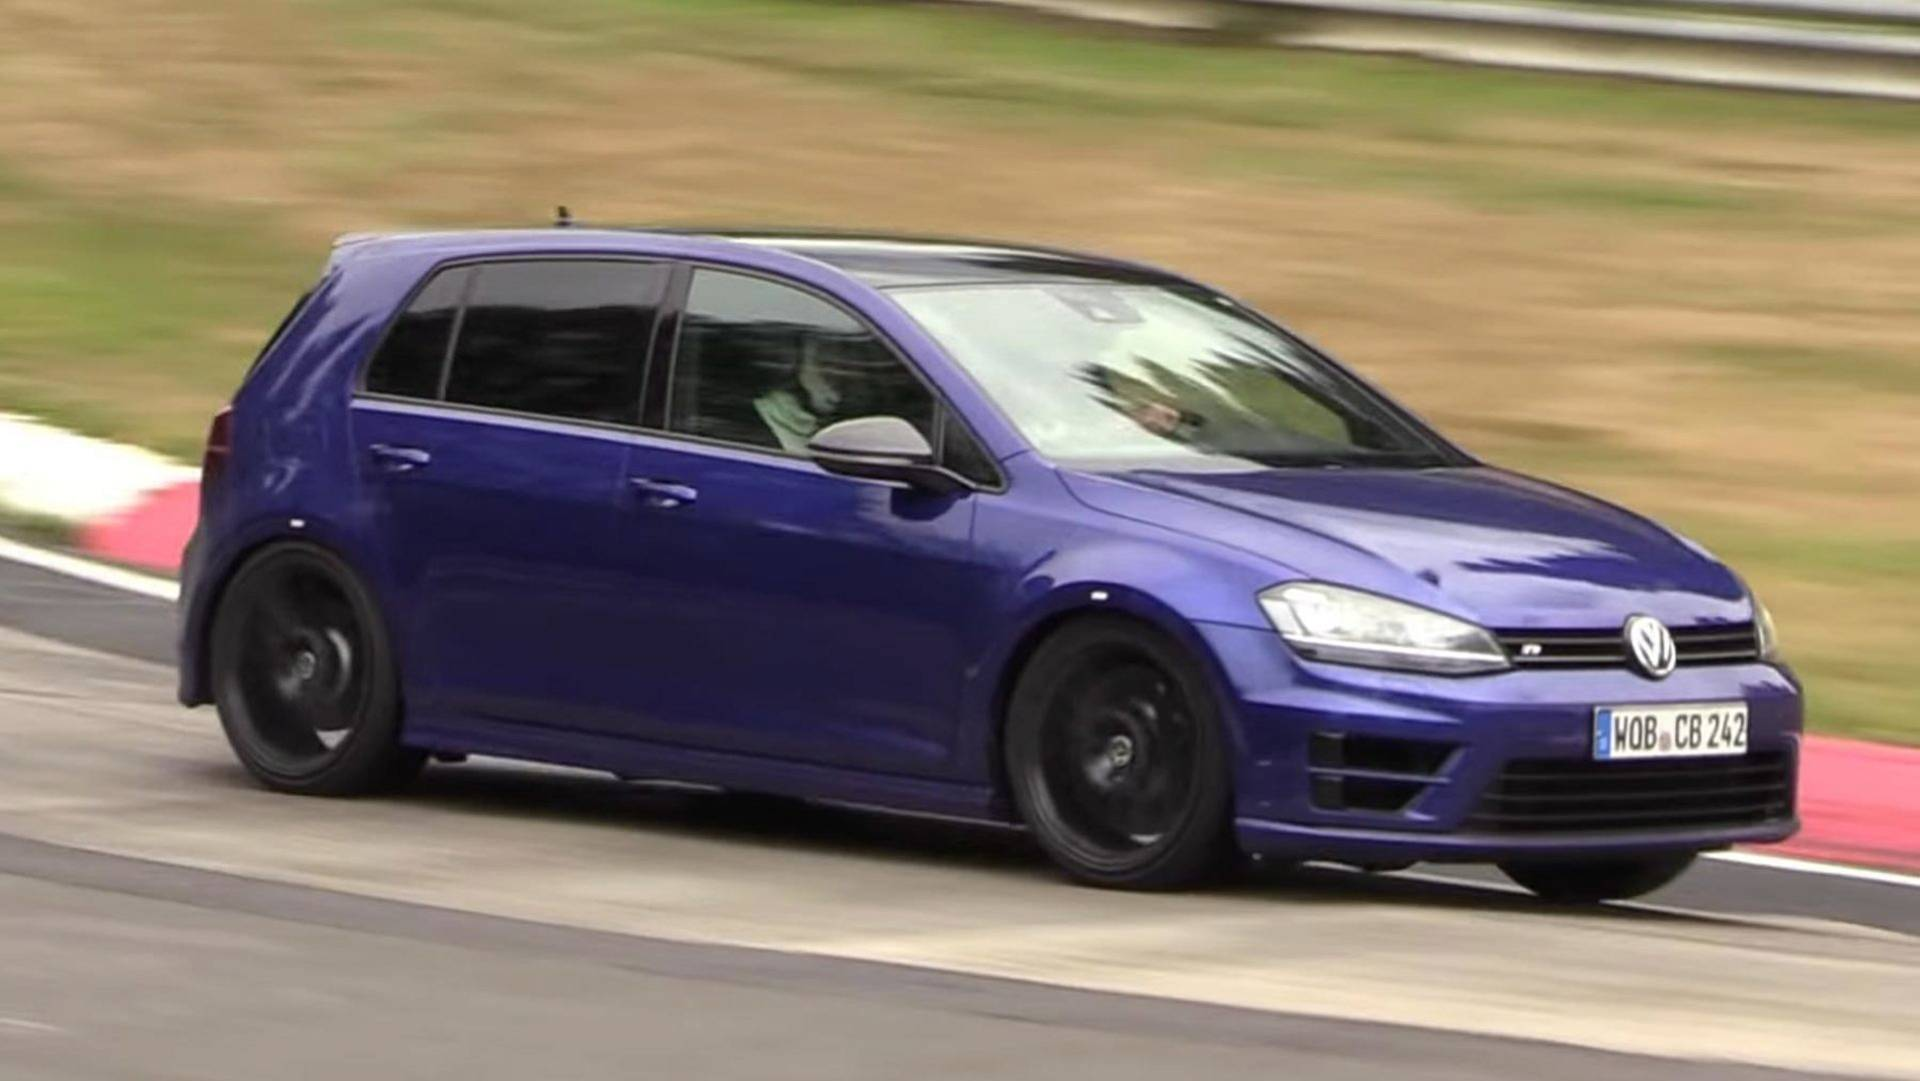 Vw Golf R400 >> Possible Vw Golf R420 Spied In Action Testing 5 Cylinder Engine